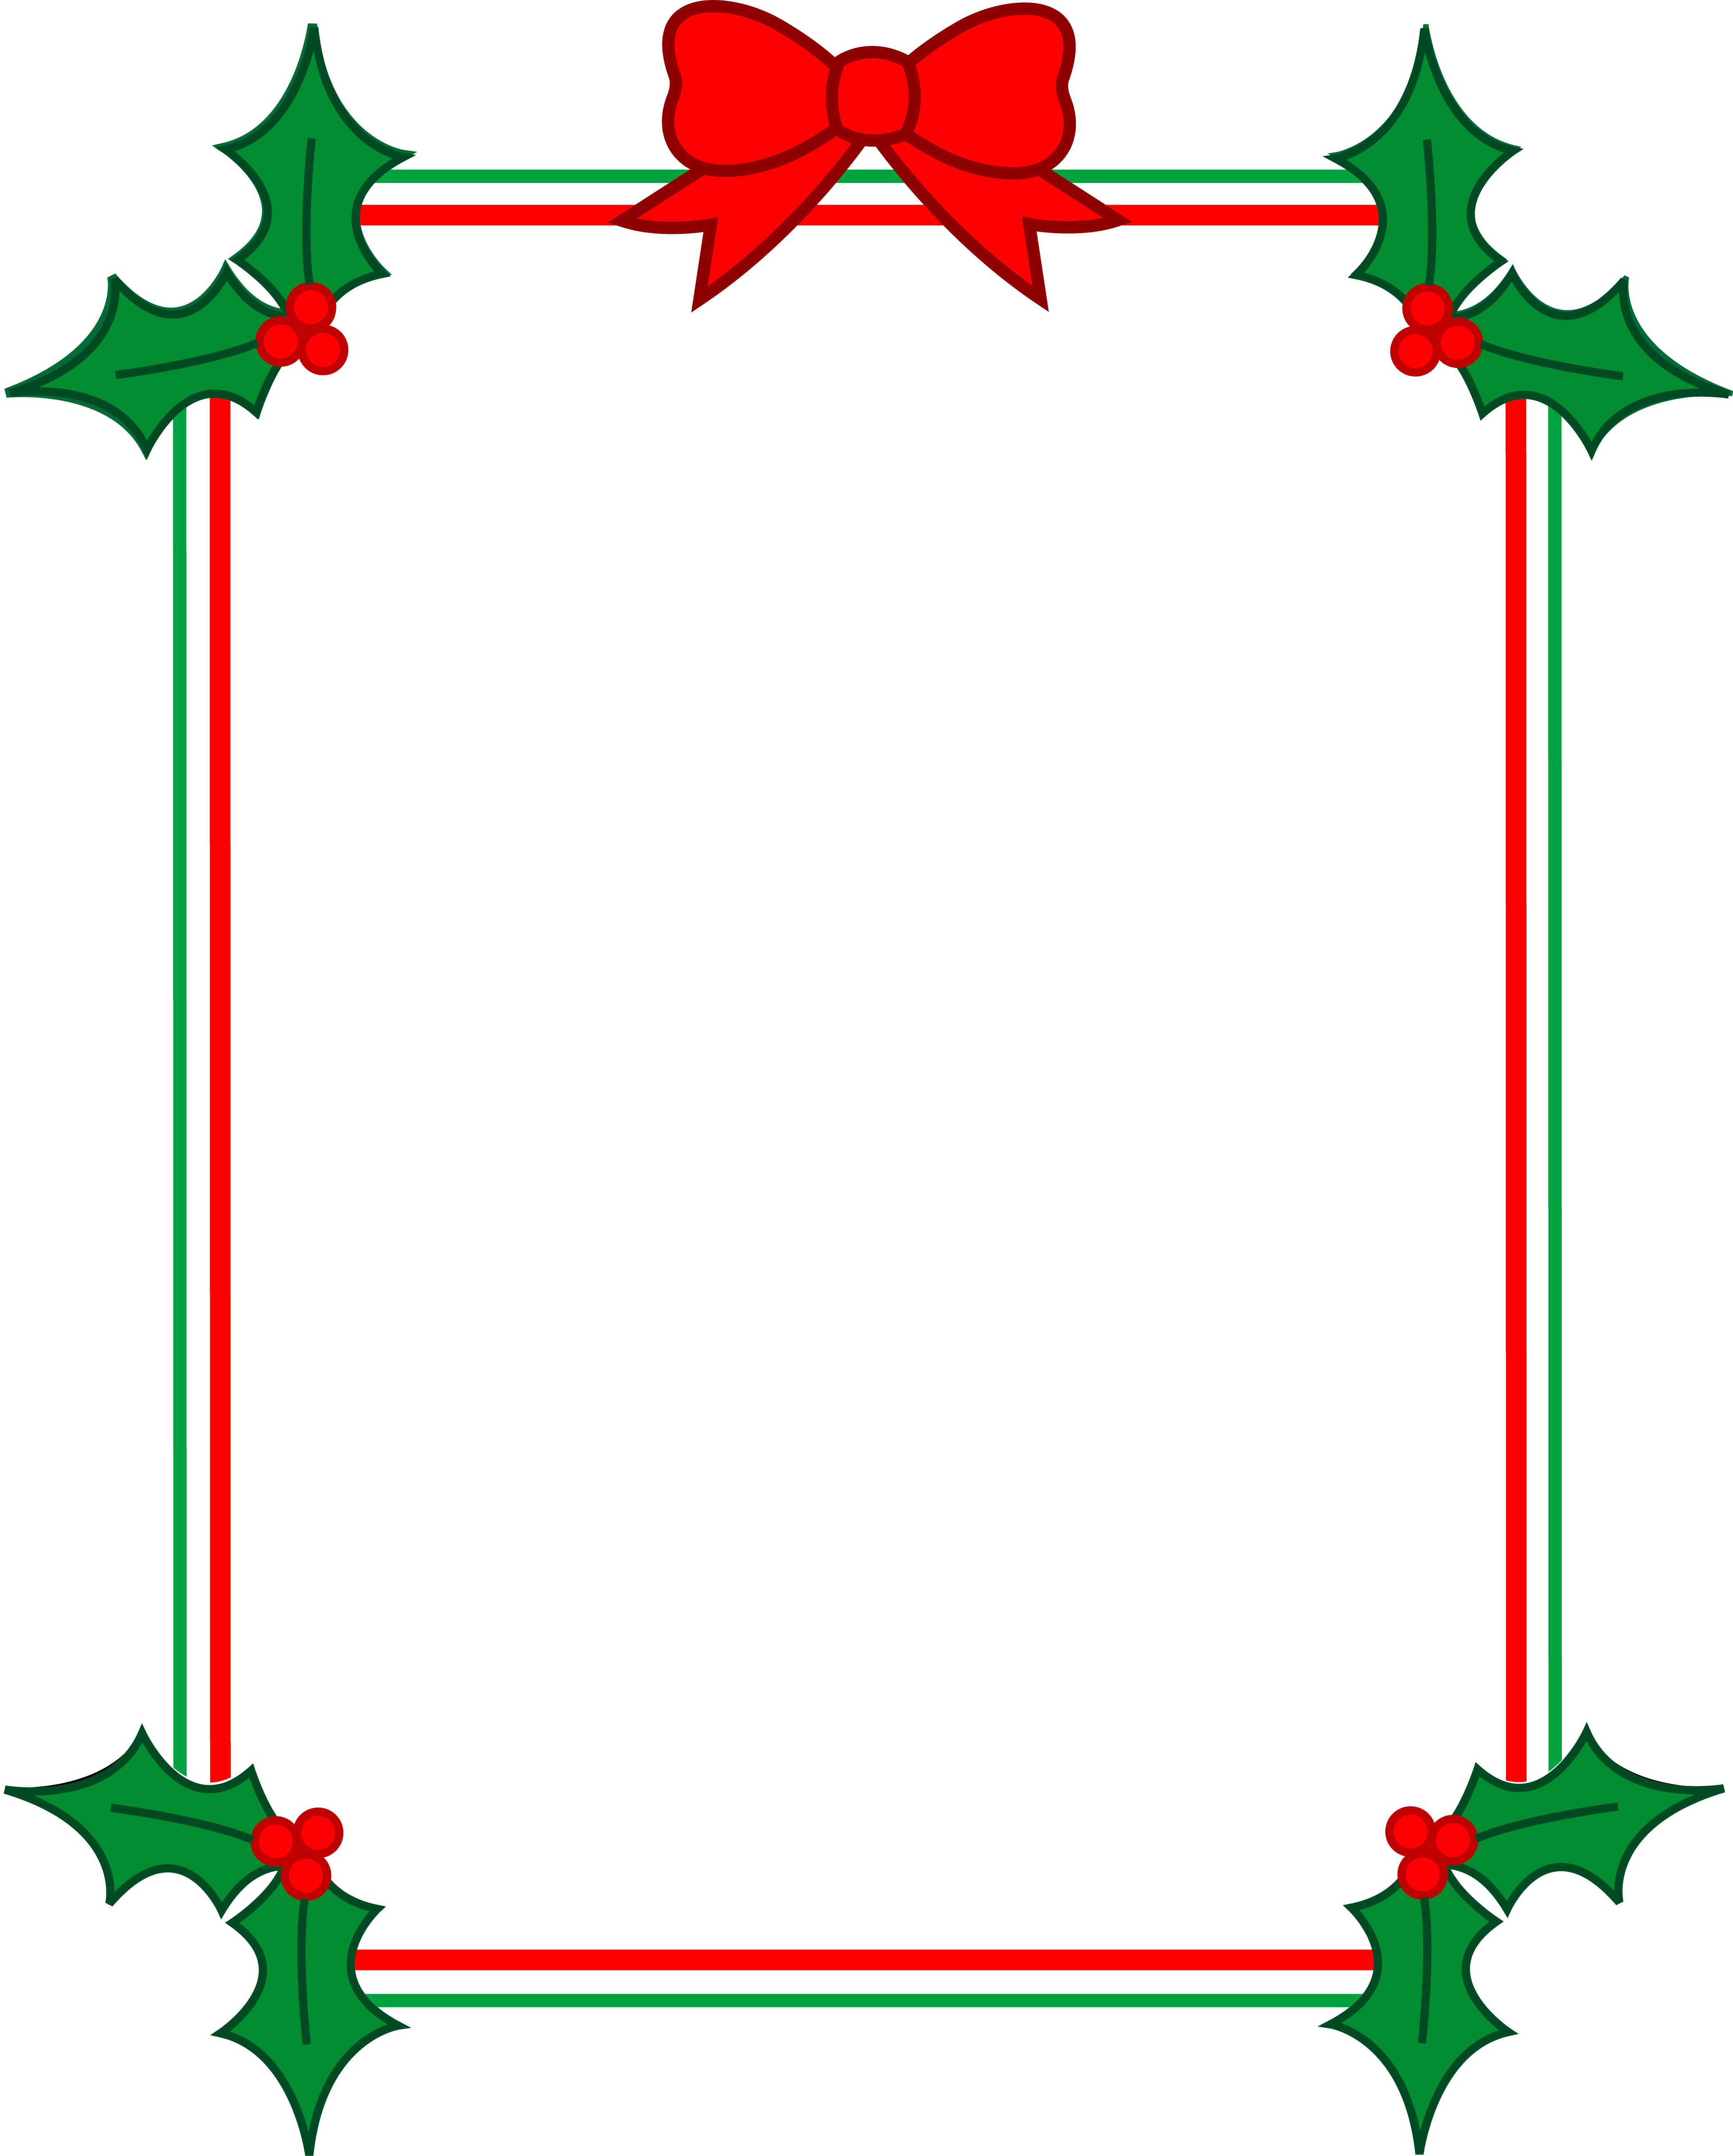 graphic about Free Printable Christmas Borders identified as Cost-free Printable Xmas Borders Clip Artwork N4 cost-free picture